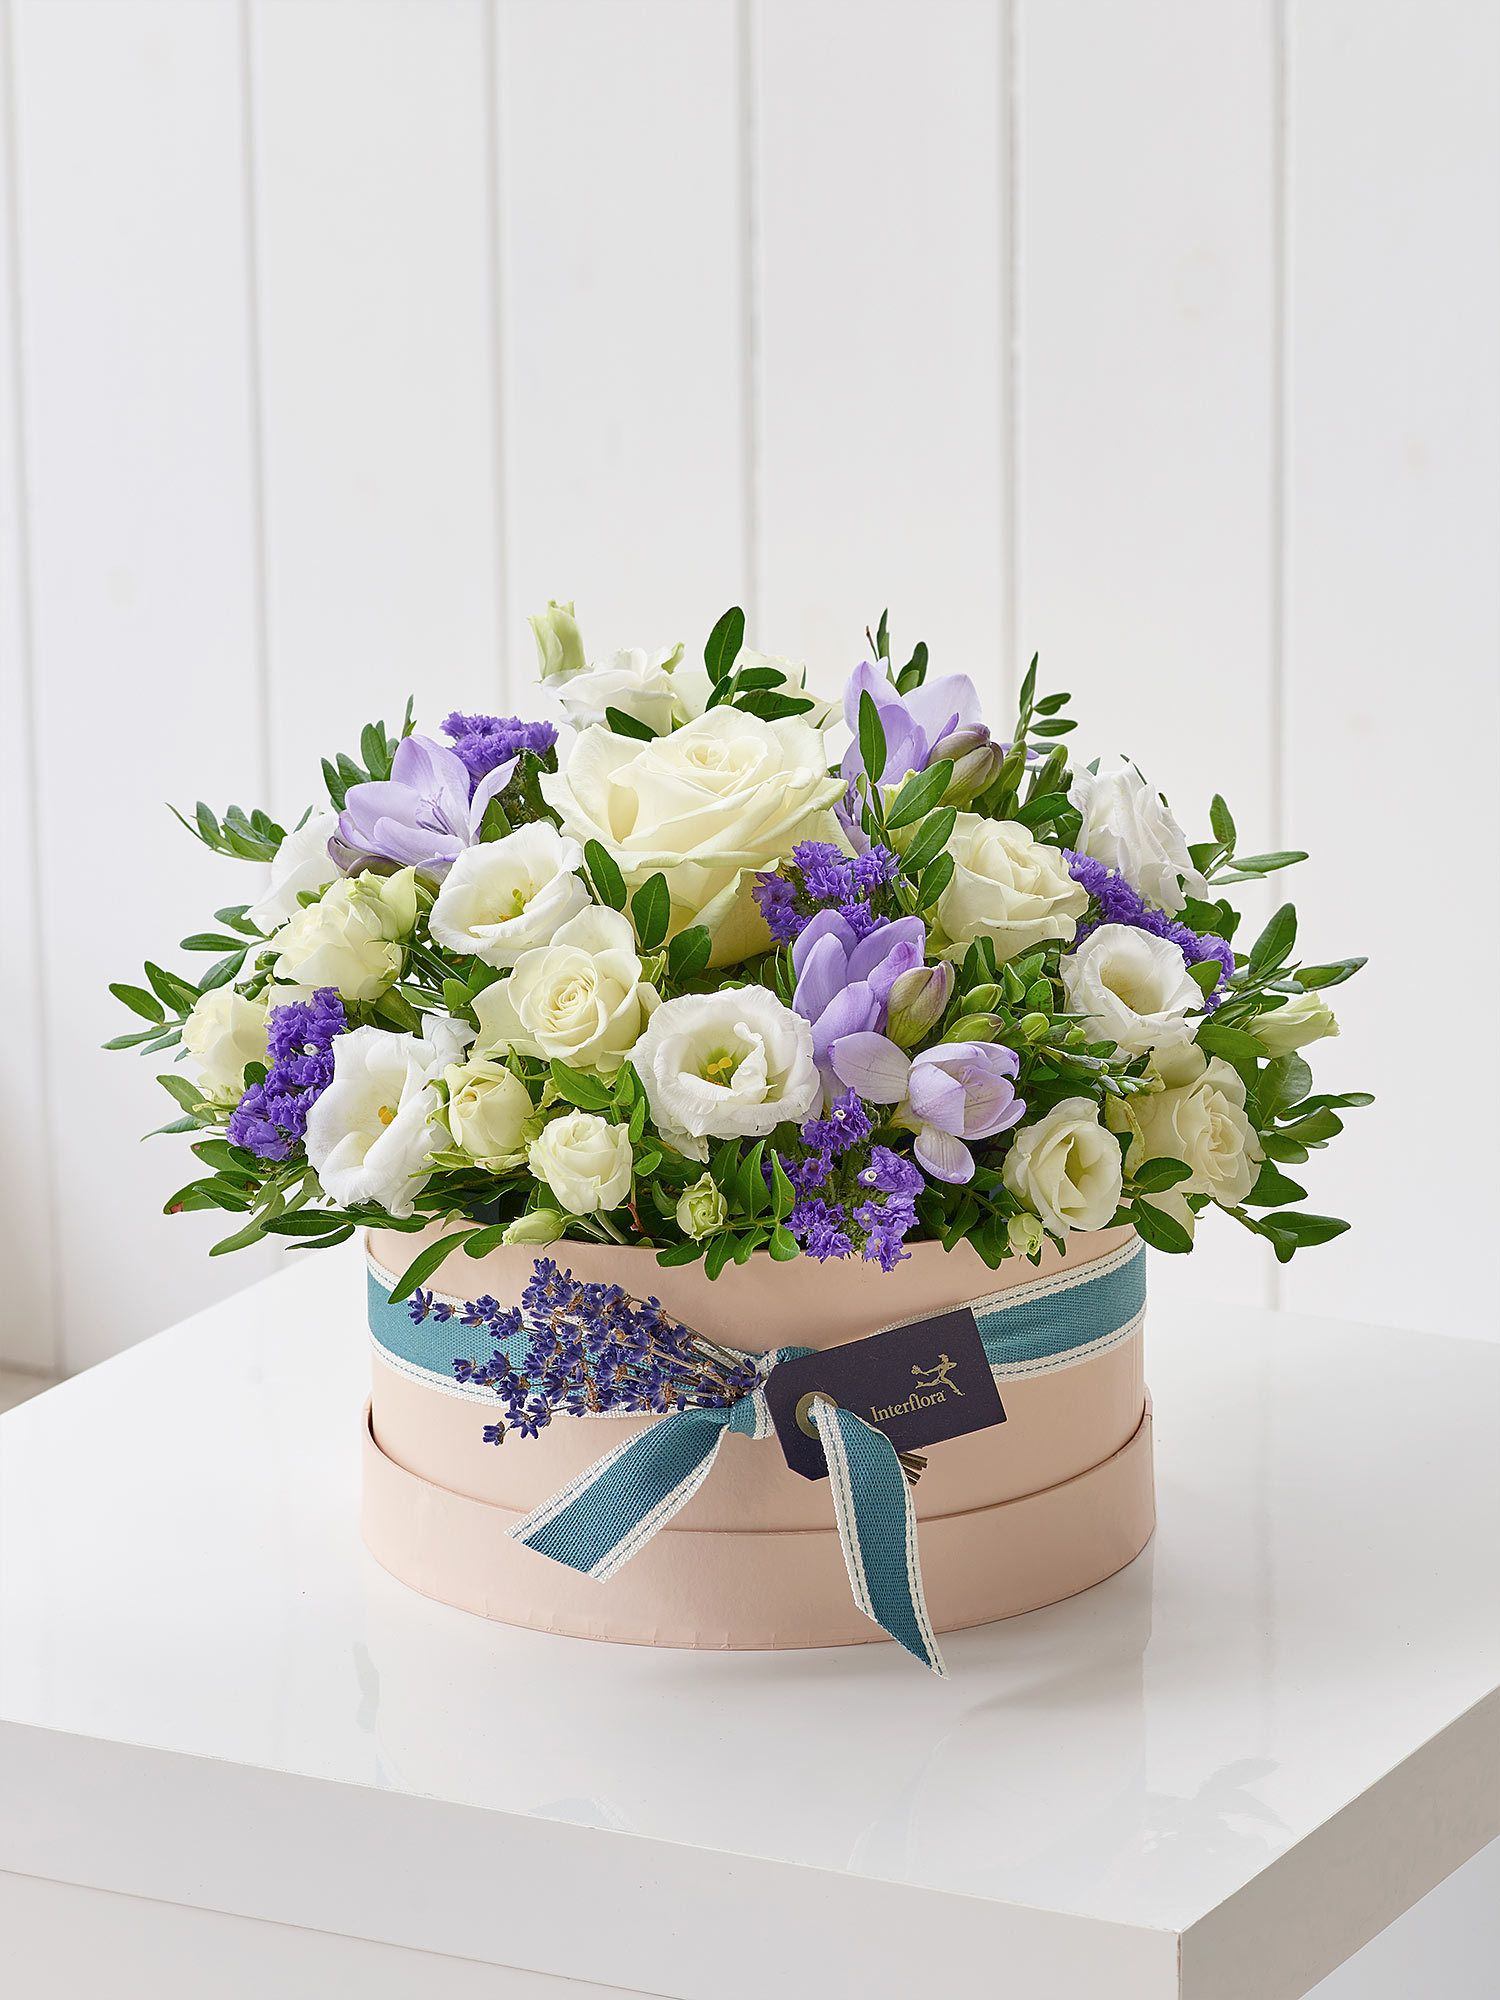 Refreshing Lilacs Hatbox Spring Flowers By Rodgers The Florist Manchester Birthday Flowers Birthday Flower Delivery Birthday Flowers Bouquet